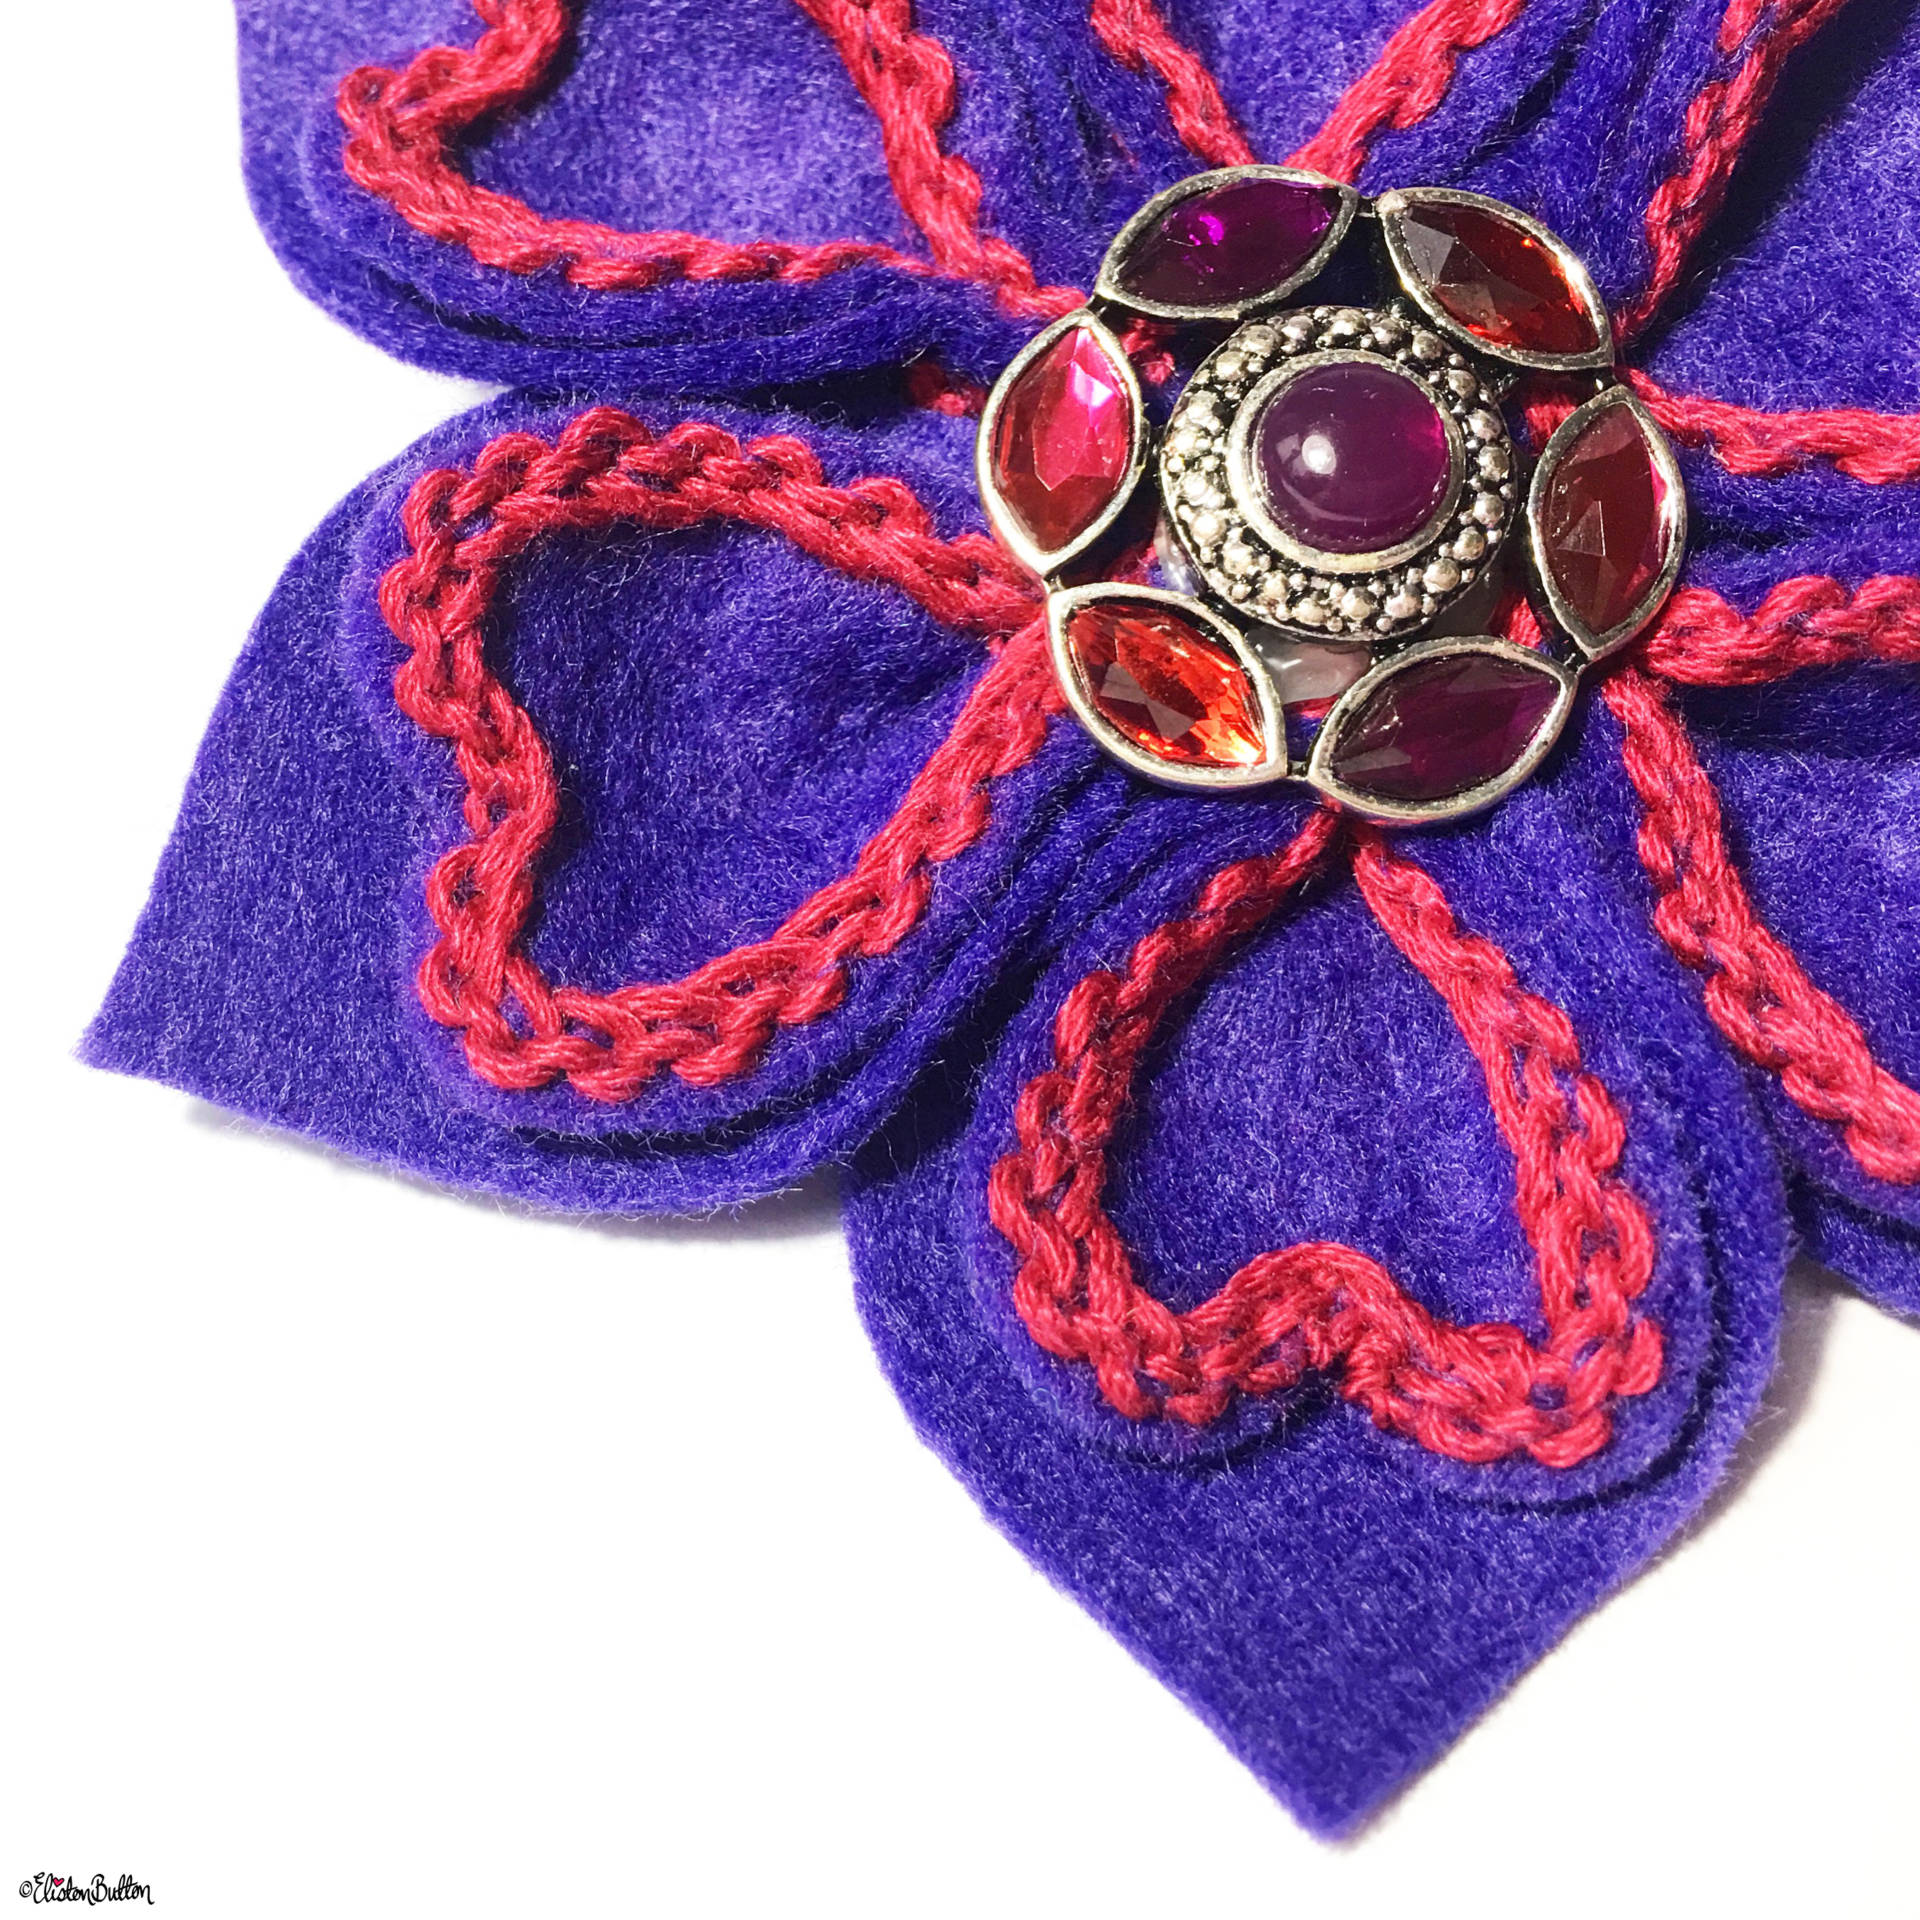 Deep Purple and Raspberry Pink Embroidered Felt Flower Brooch by Eliston Button - Eliston Button is Four! at www.elistonbutton.com - Eliston Button - That Crafty Kid – Art, Design, Craft & Adventure.